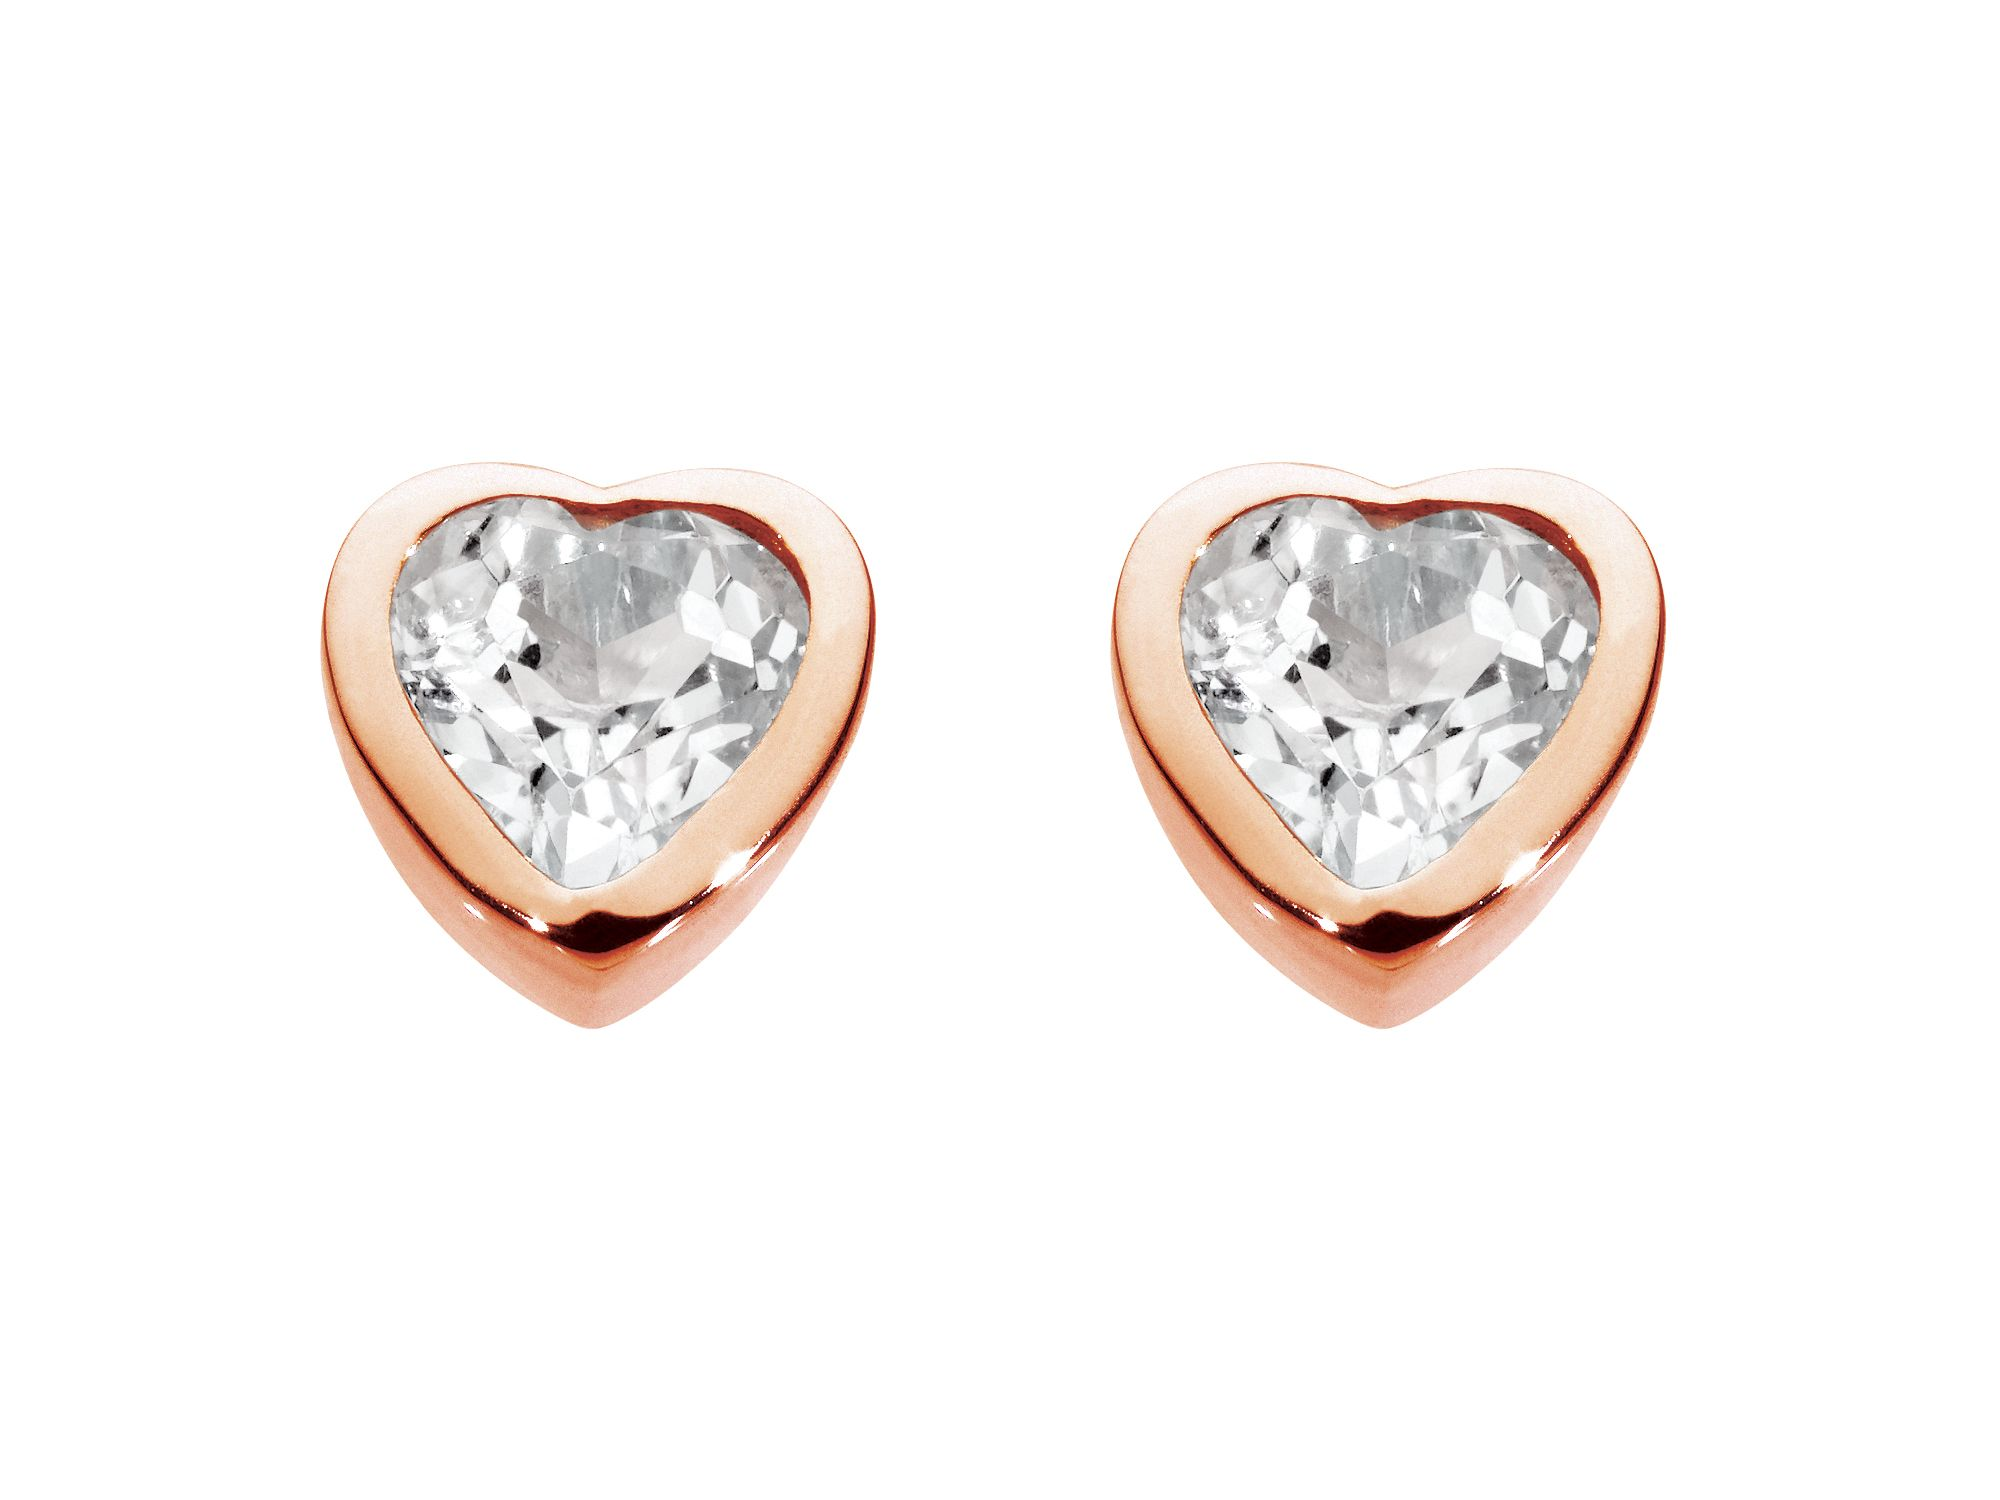 Rose gold plate stone heart earrings